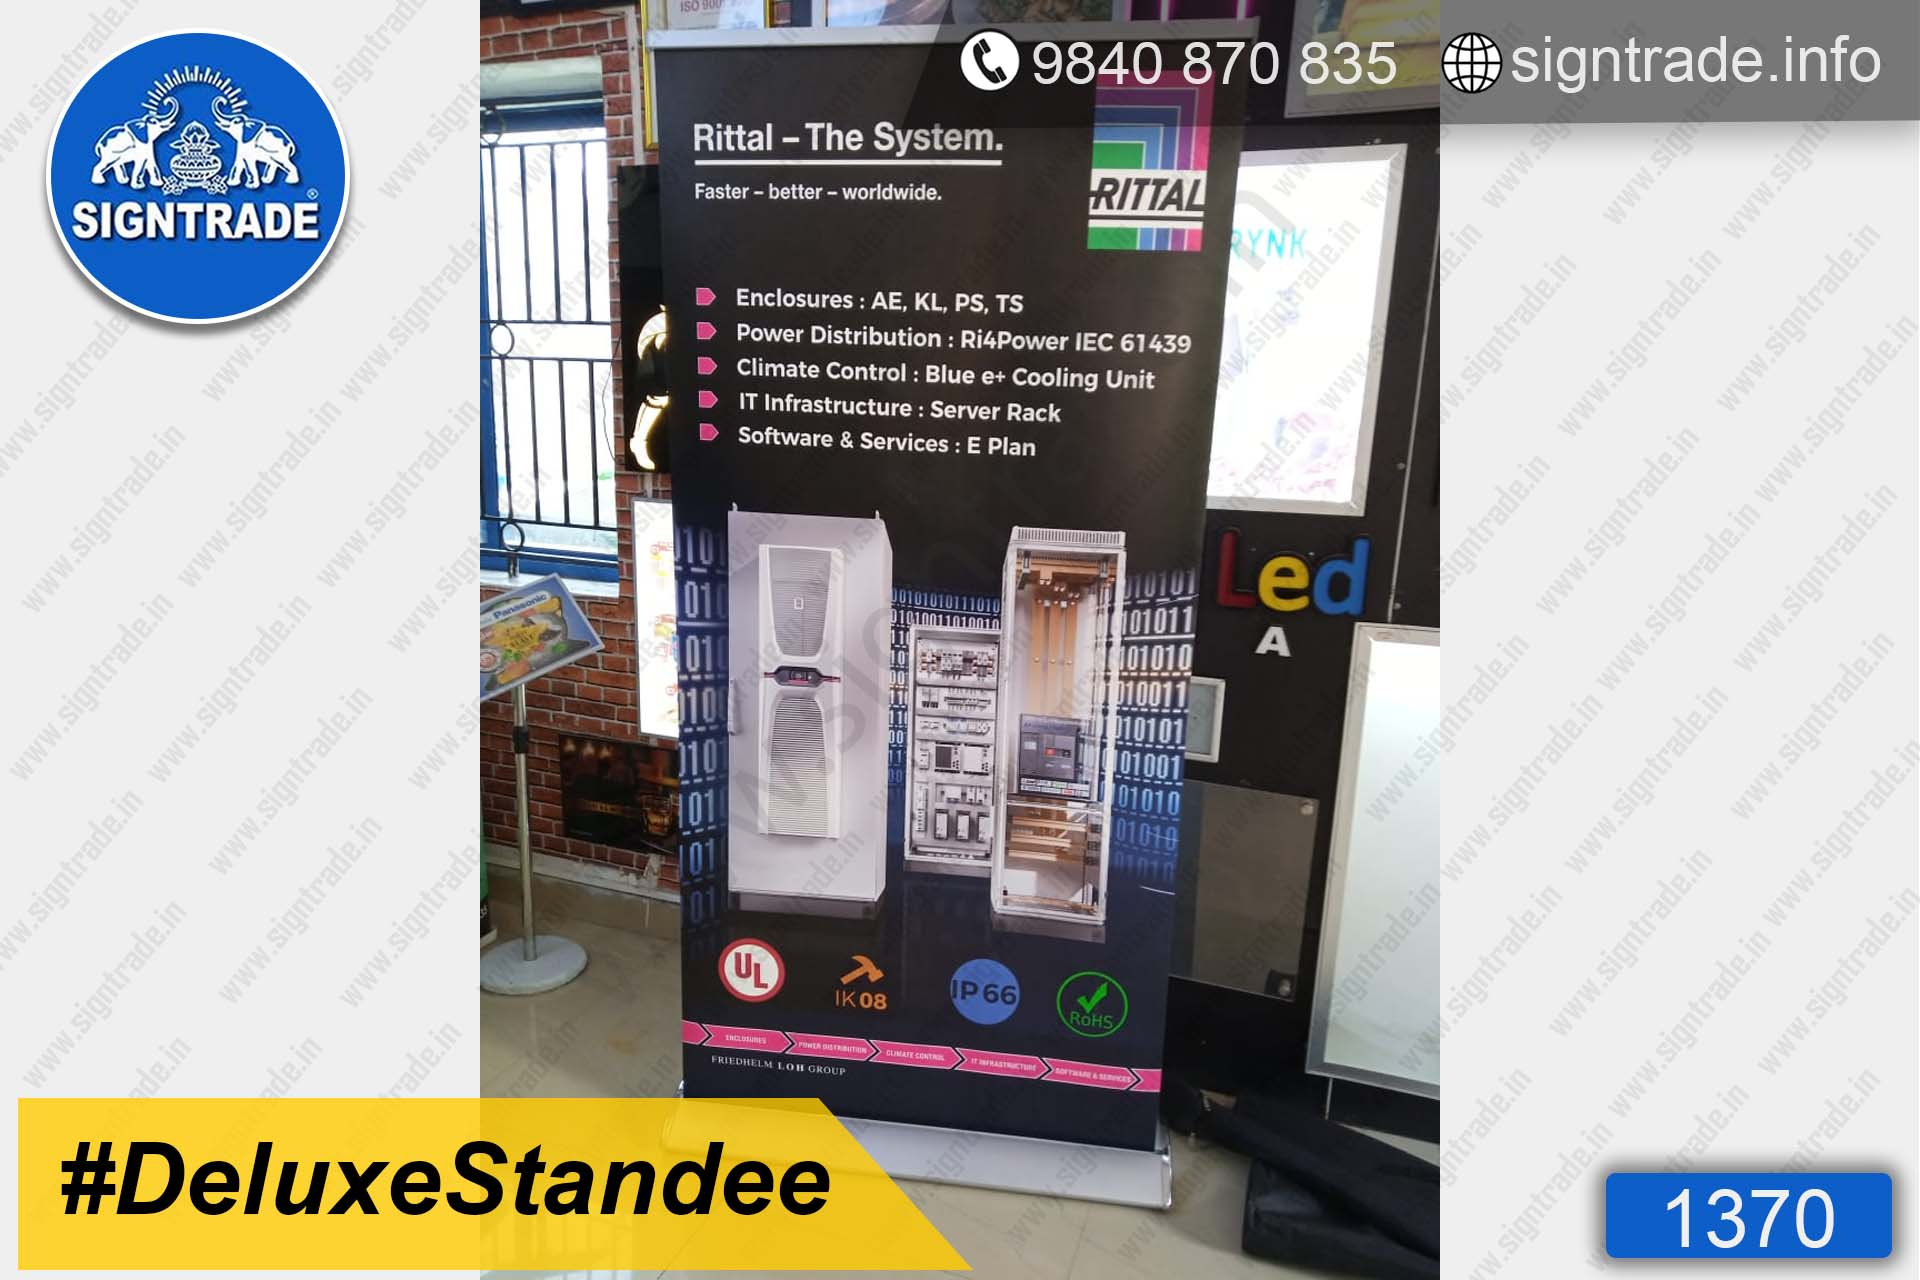 Rittal - The System - 1370, Retractable Banner, Deluxe Roll Up Banner Stand, Banner Stand, Roll Up Banner, Standee, Promotional Standee, Promotional Roll Up Standee, Promo Standee,